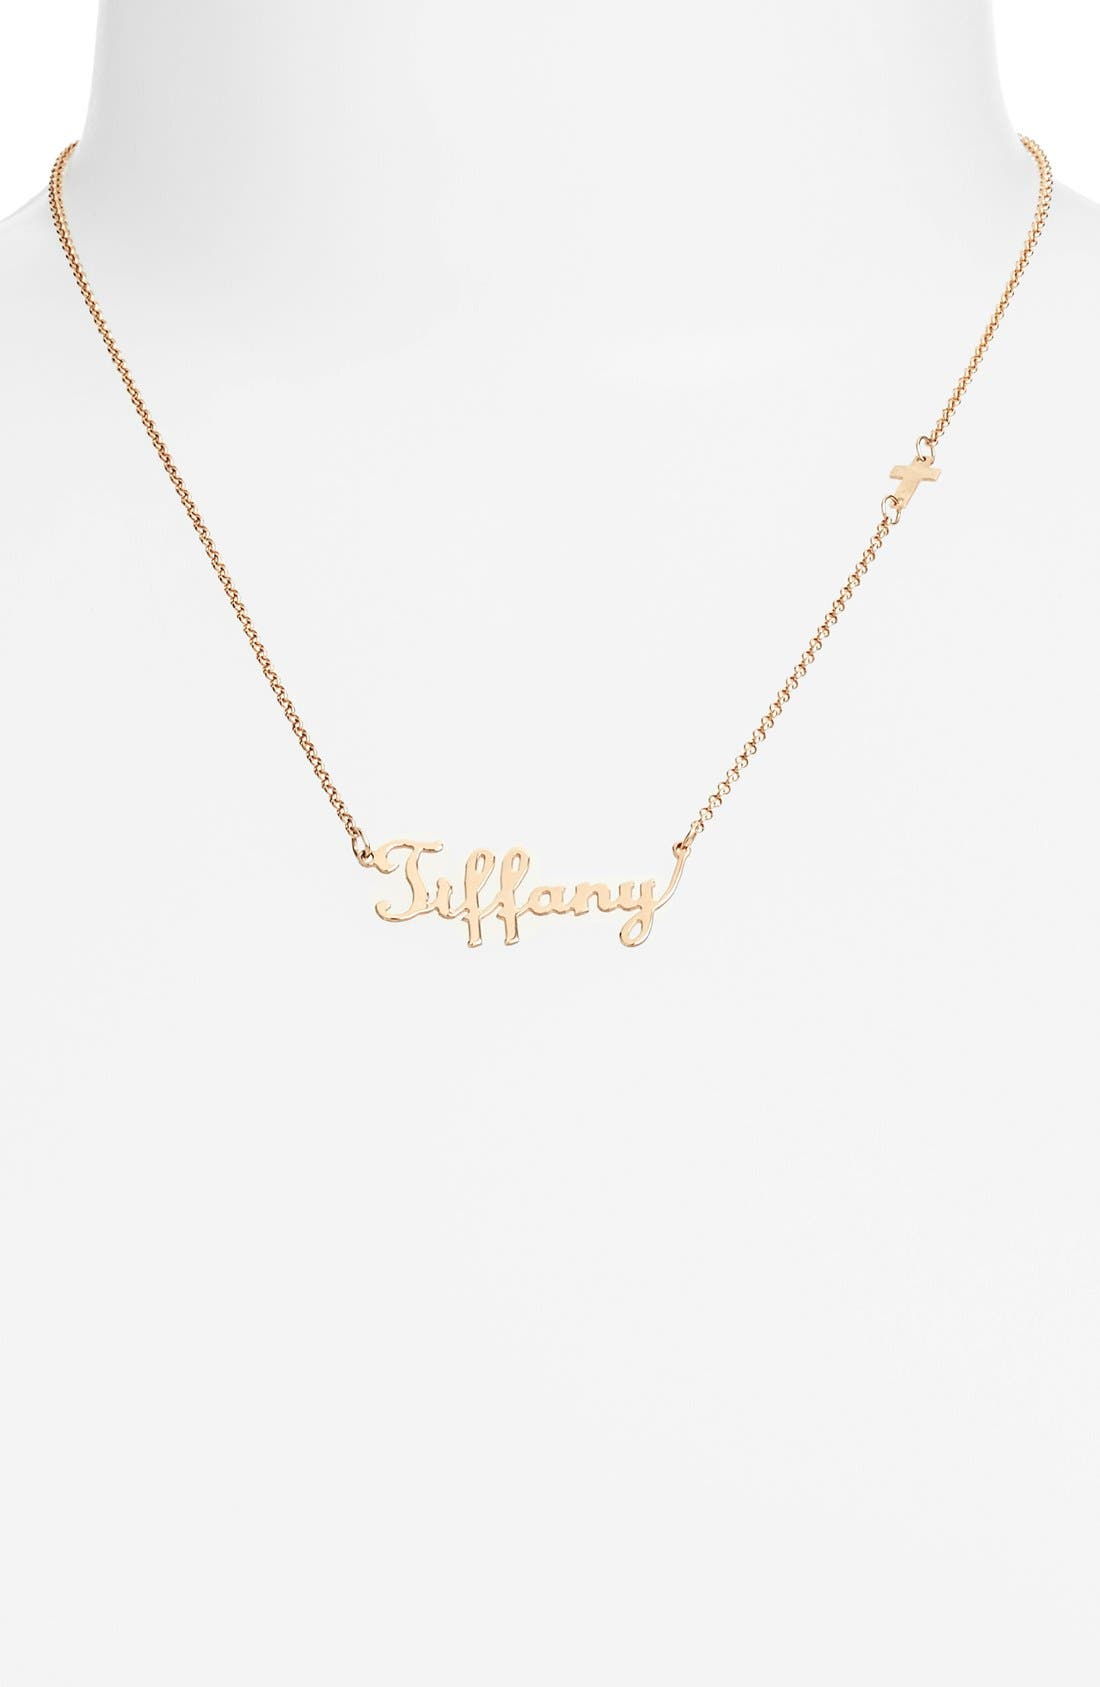 Personalized Script Name with Cross Necklace,                             Alternate thumbnail 2, color,                             Rose Gold